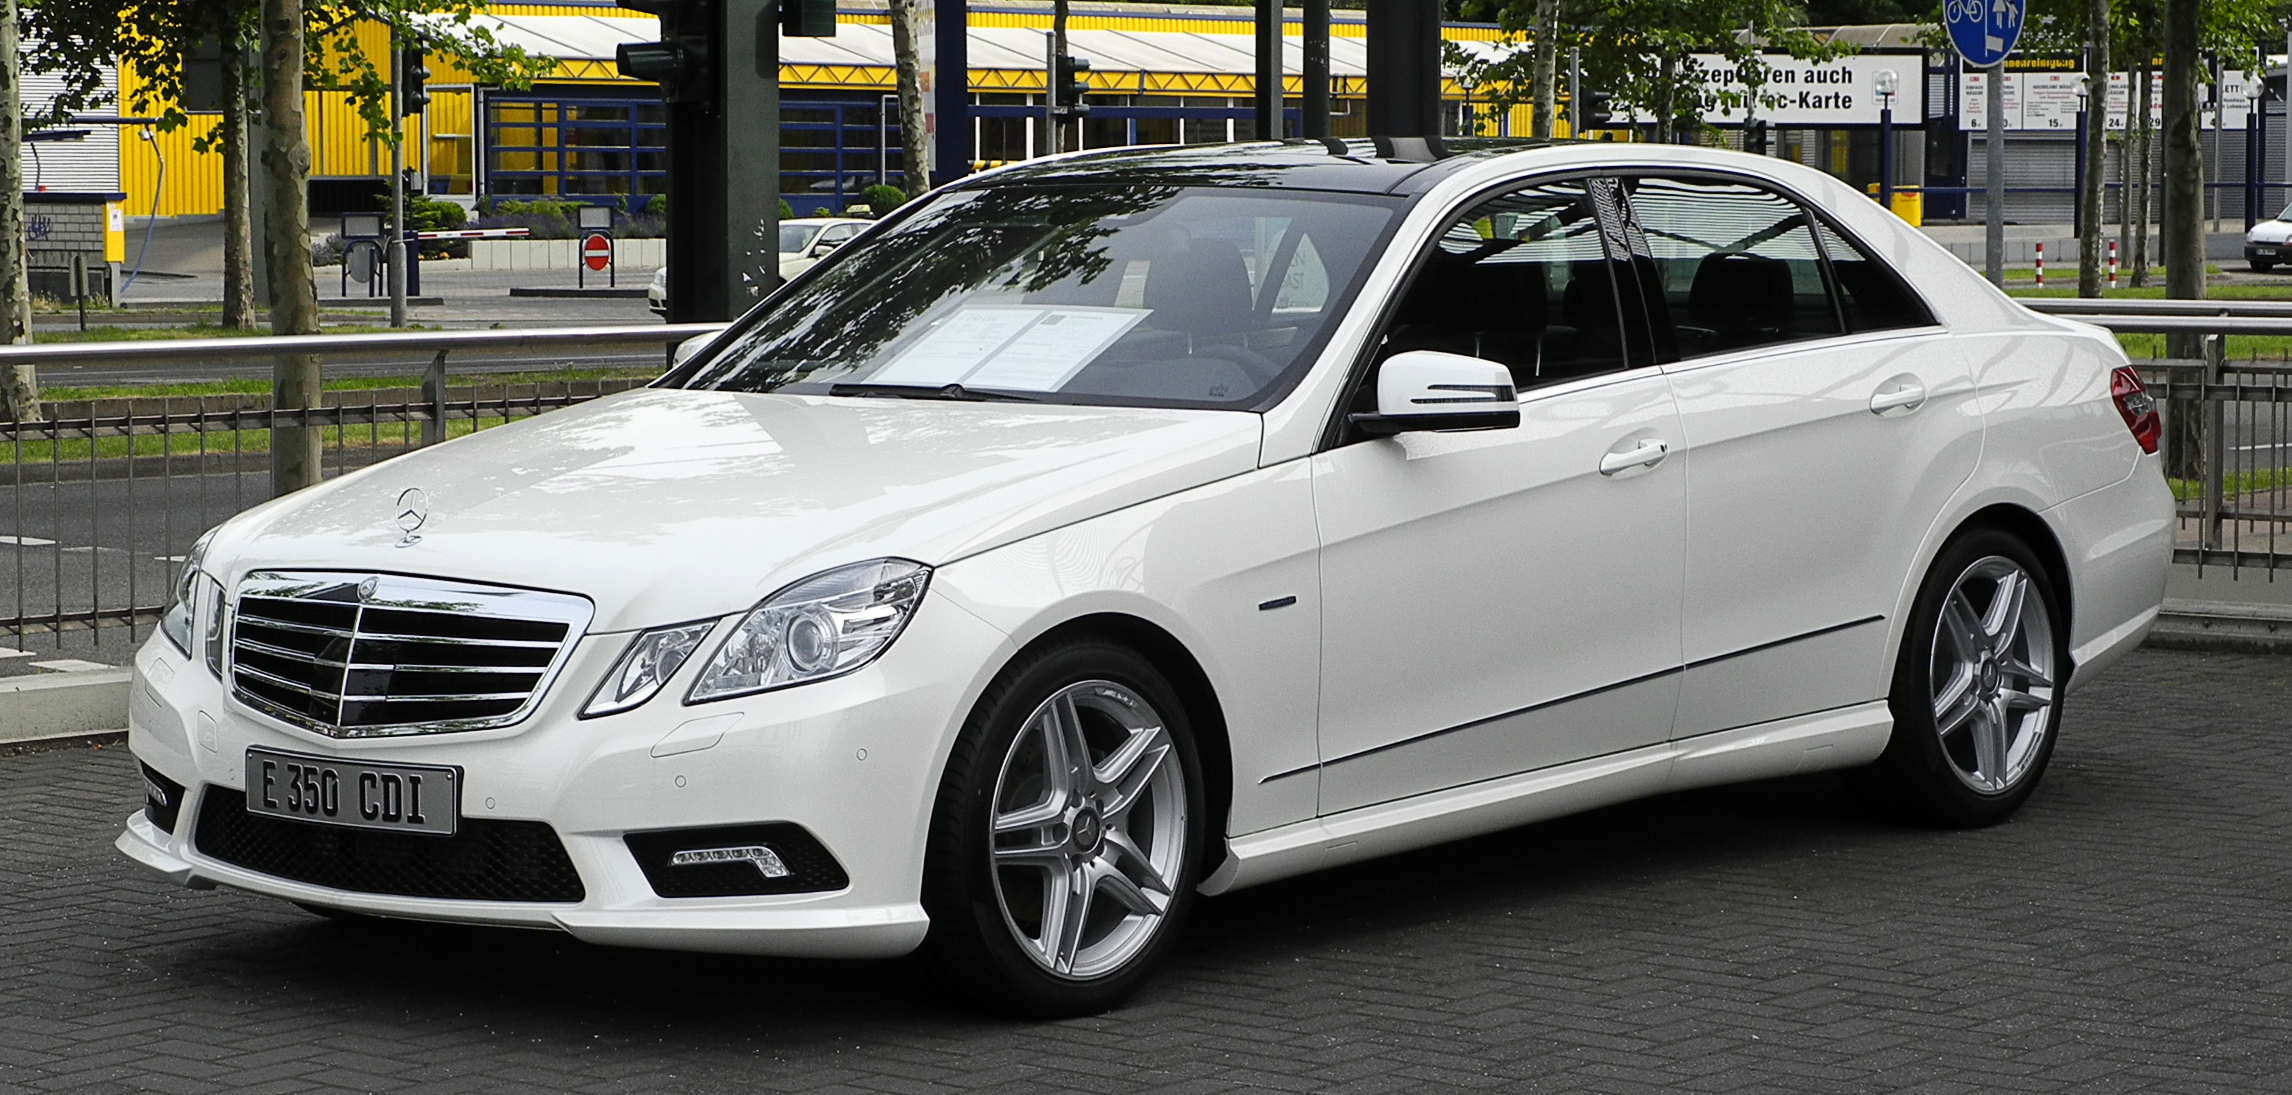 mercedes benz e 350 cdi blueefficiency 4matic. Black Bedroom Furniture Sets. Home Design Ideas